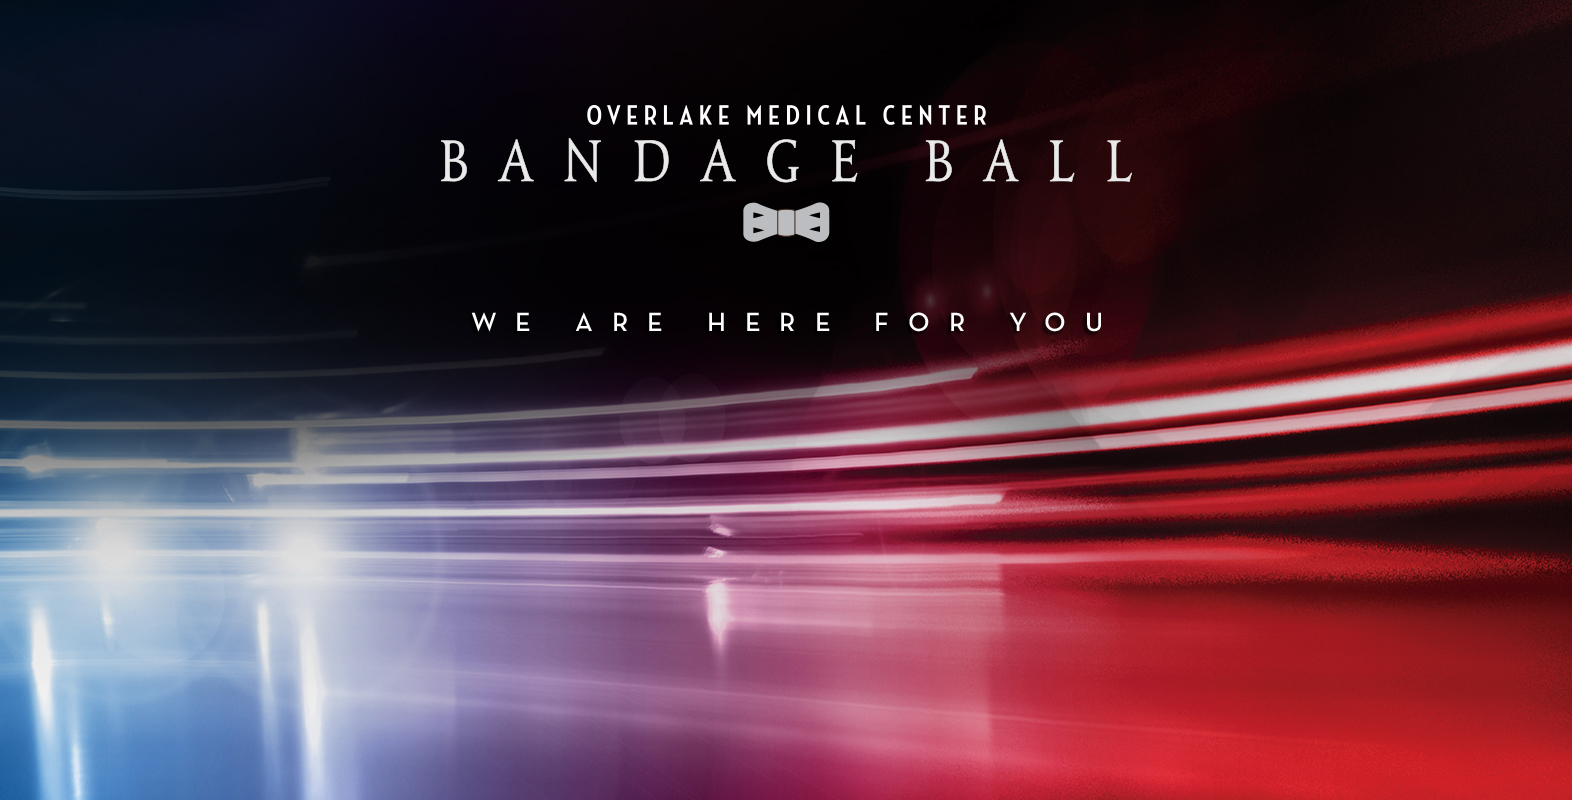 Bandage Ball logo